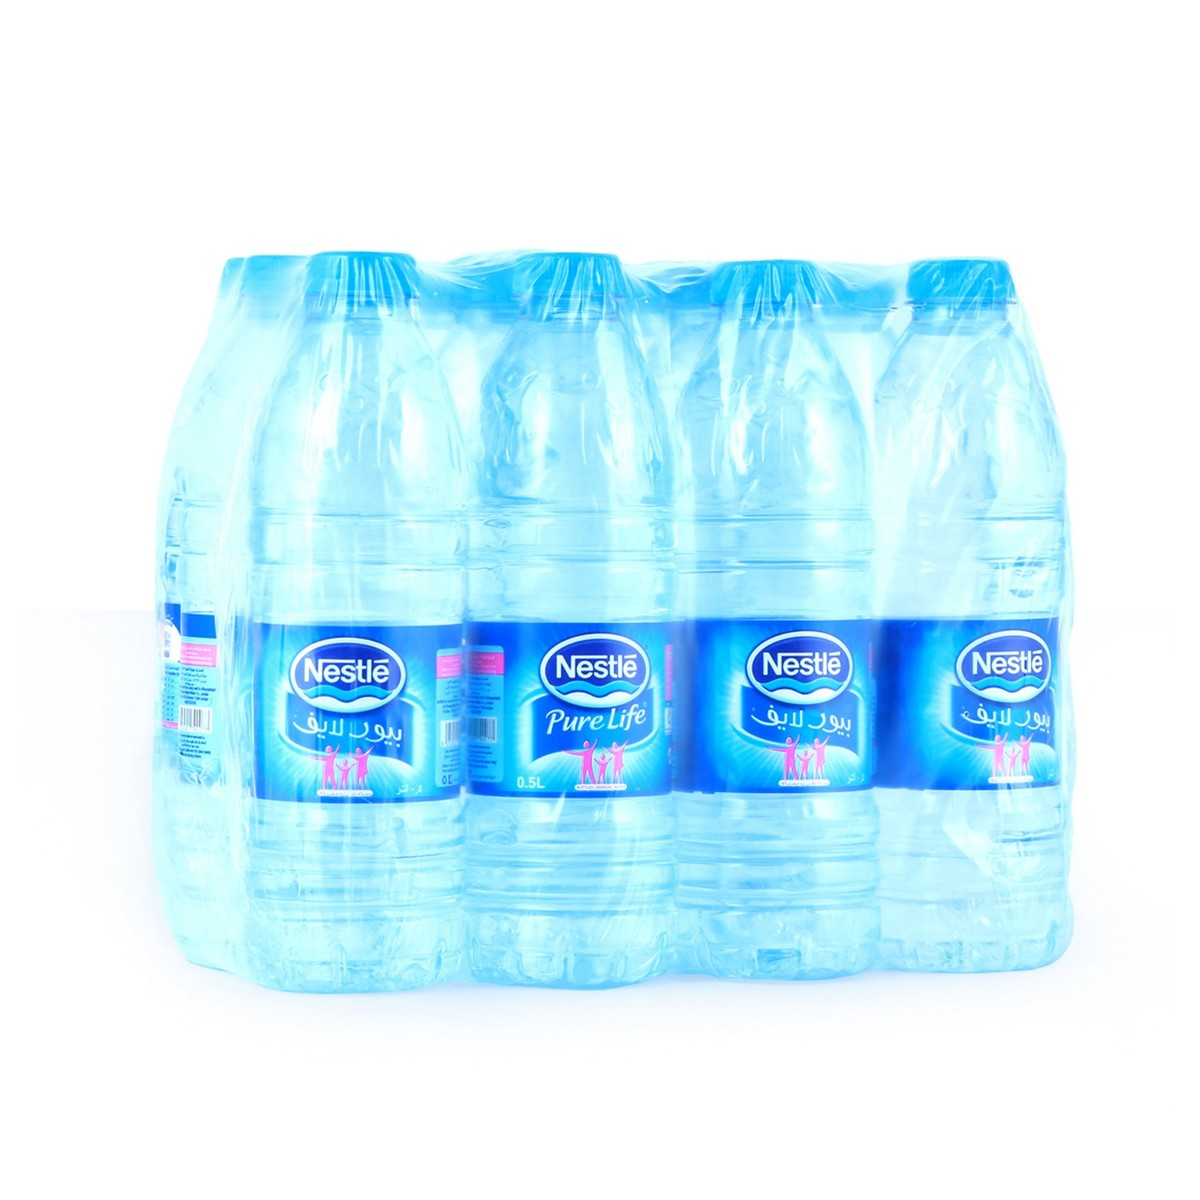 Buy Nestle PureLife Drinking Water 500ml x 12 Pieces - Mineral